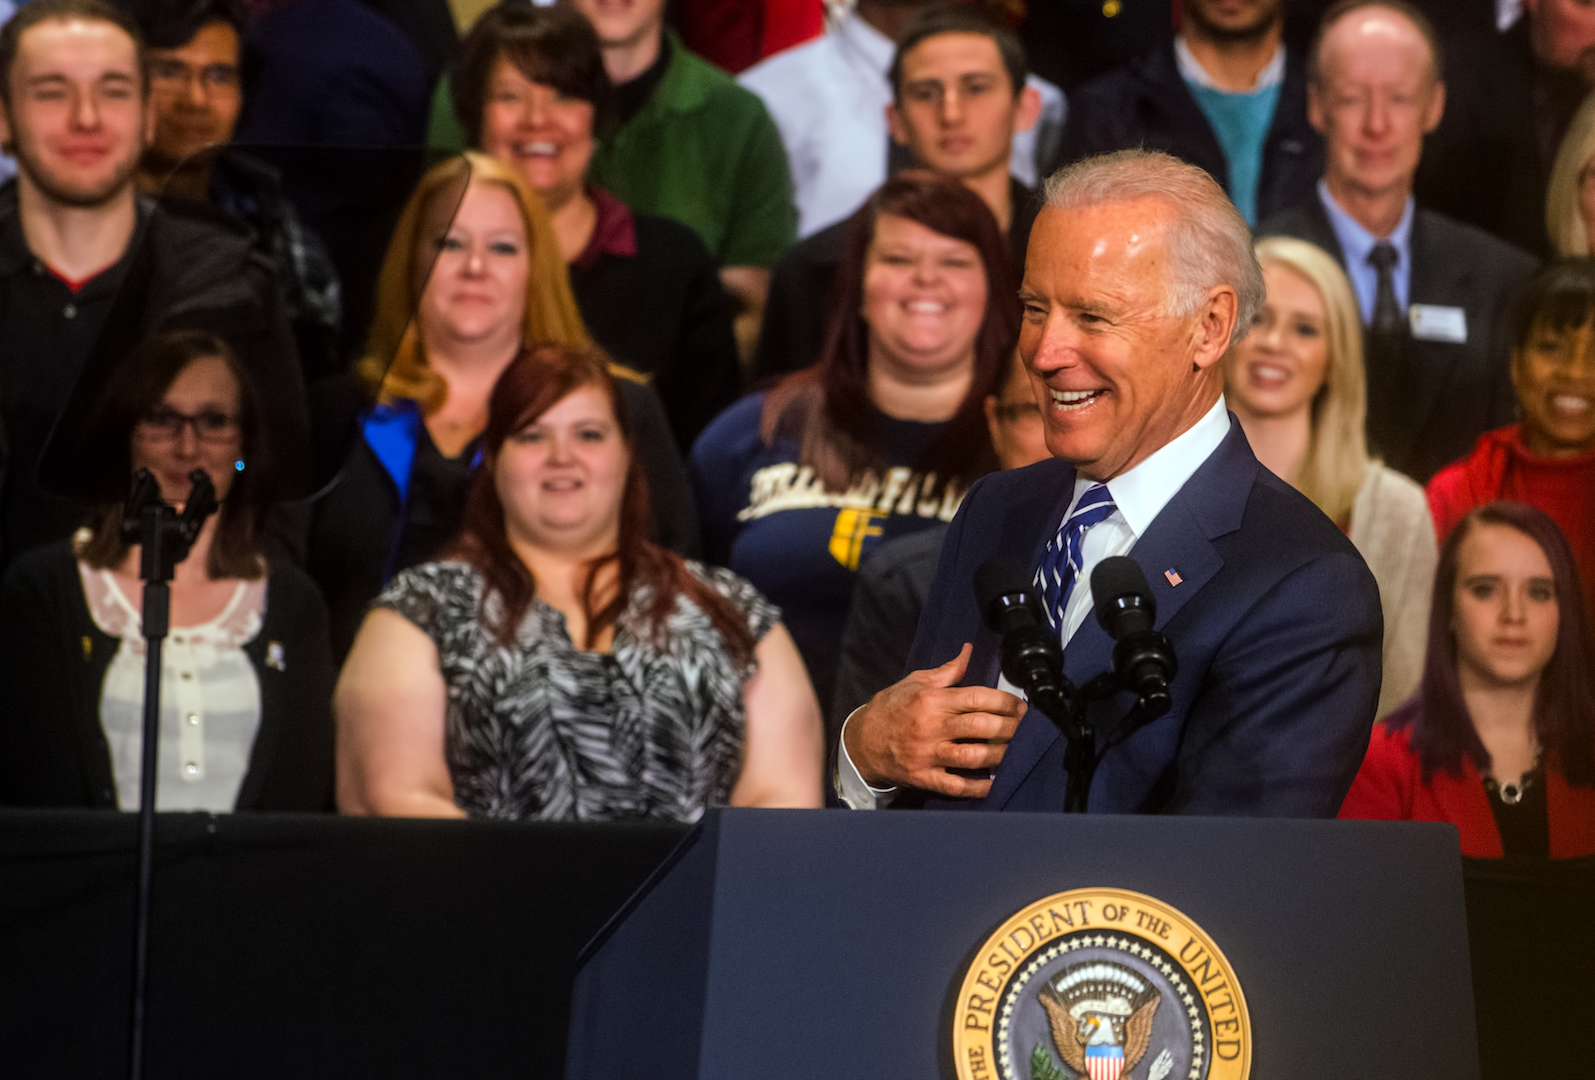 Vice President Biden at the PSTCC campus in Knoxville, TN, photograph by Bill Foster